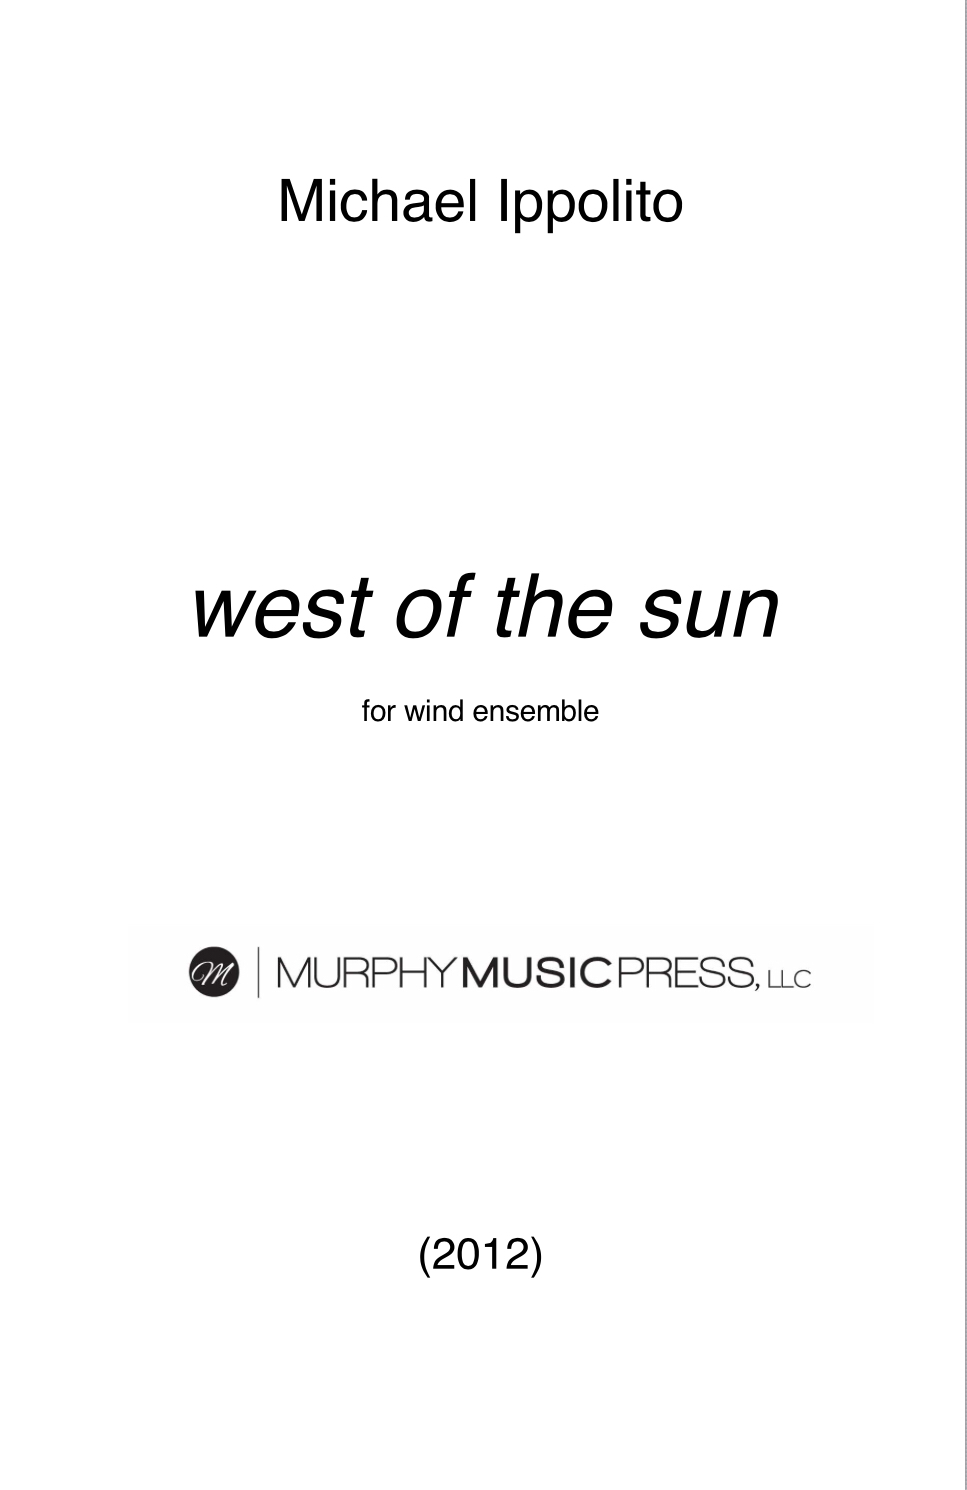 West Of The Sun (rental) by Michael Ippolito